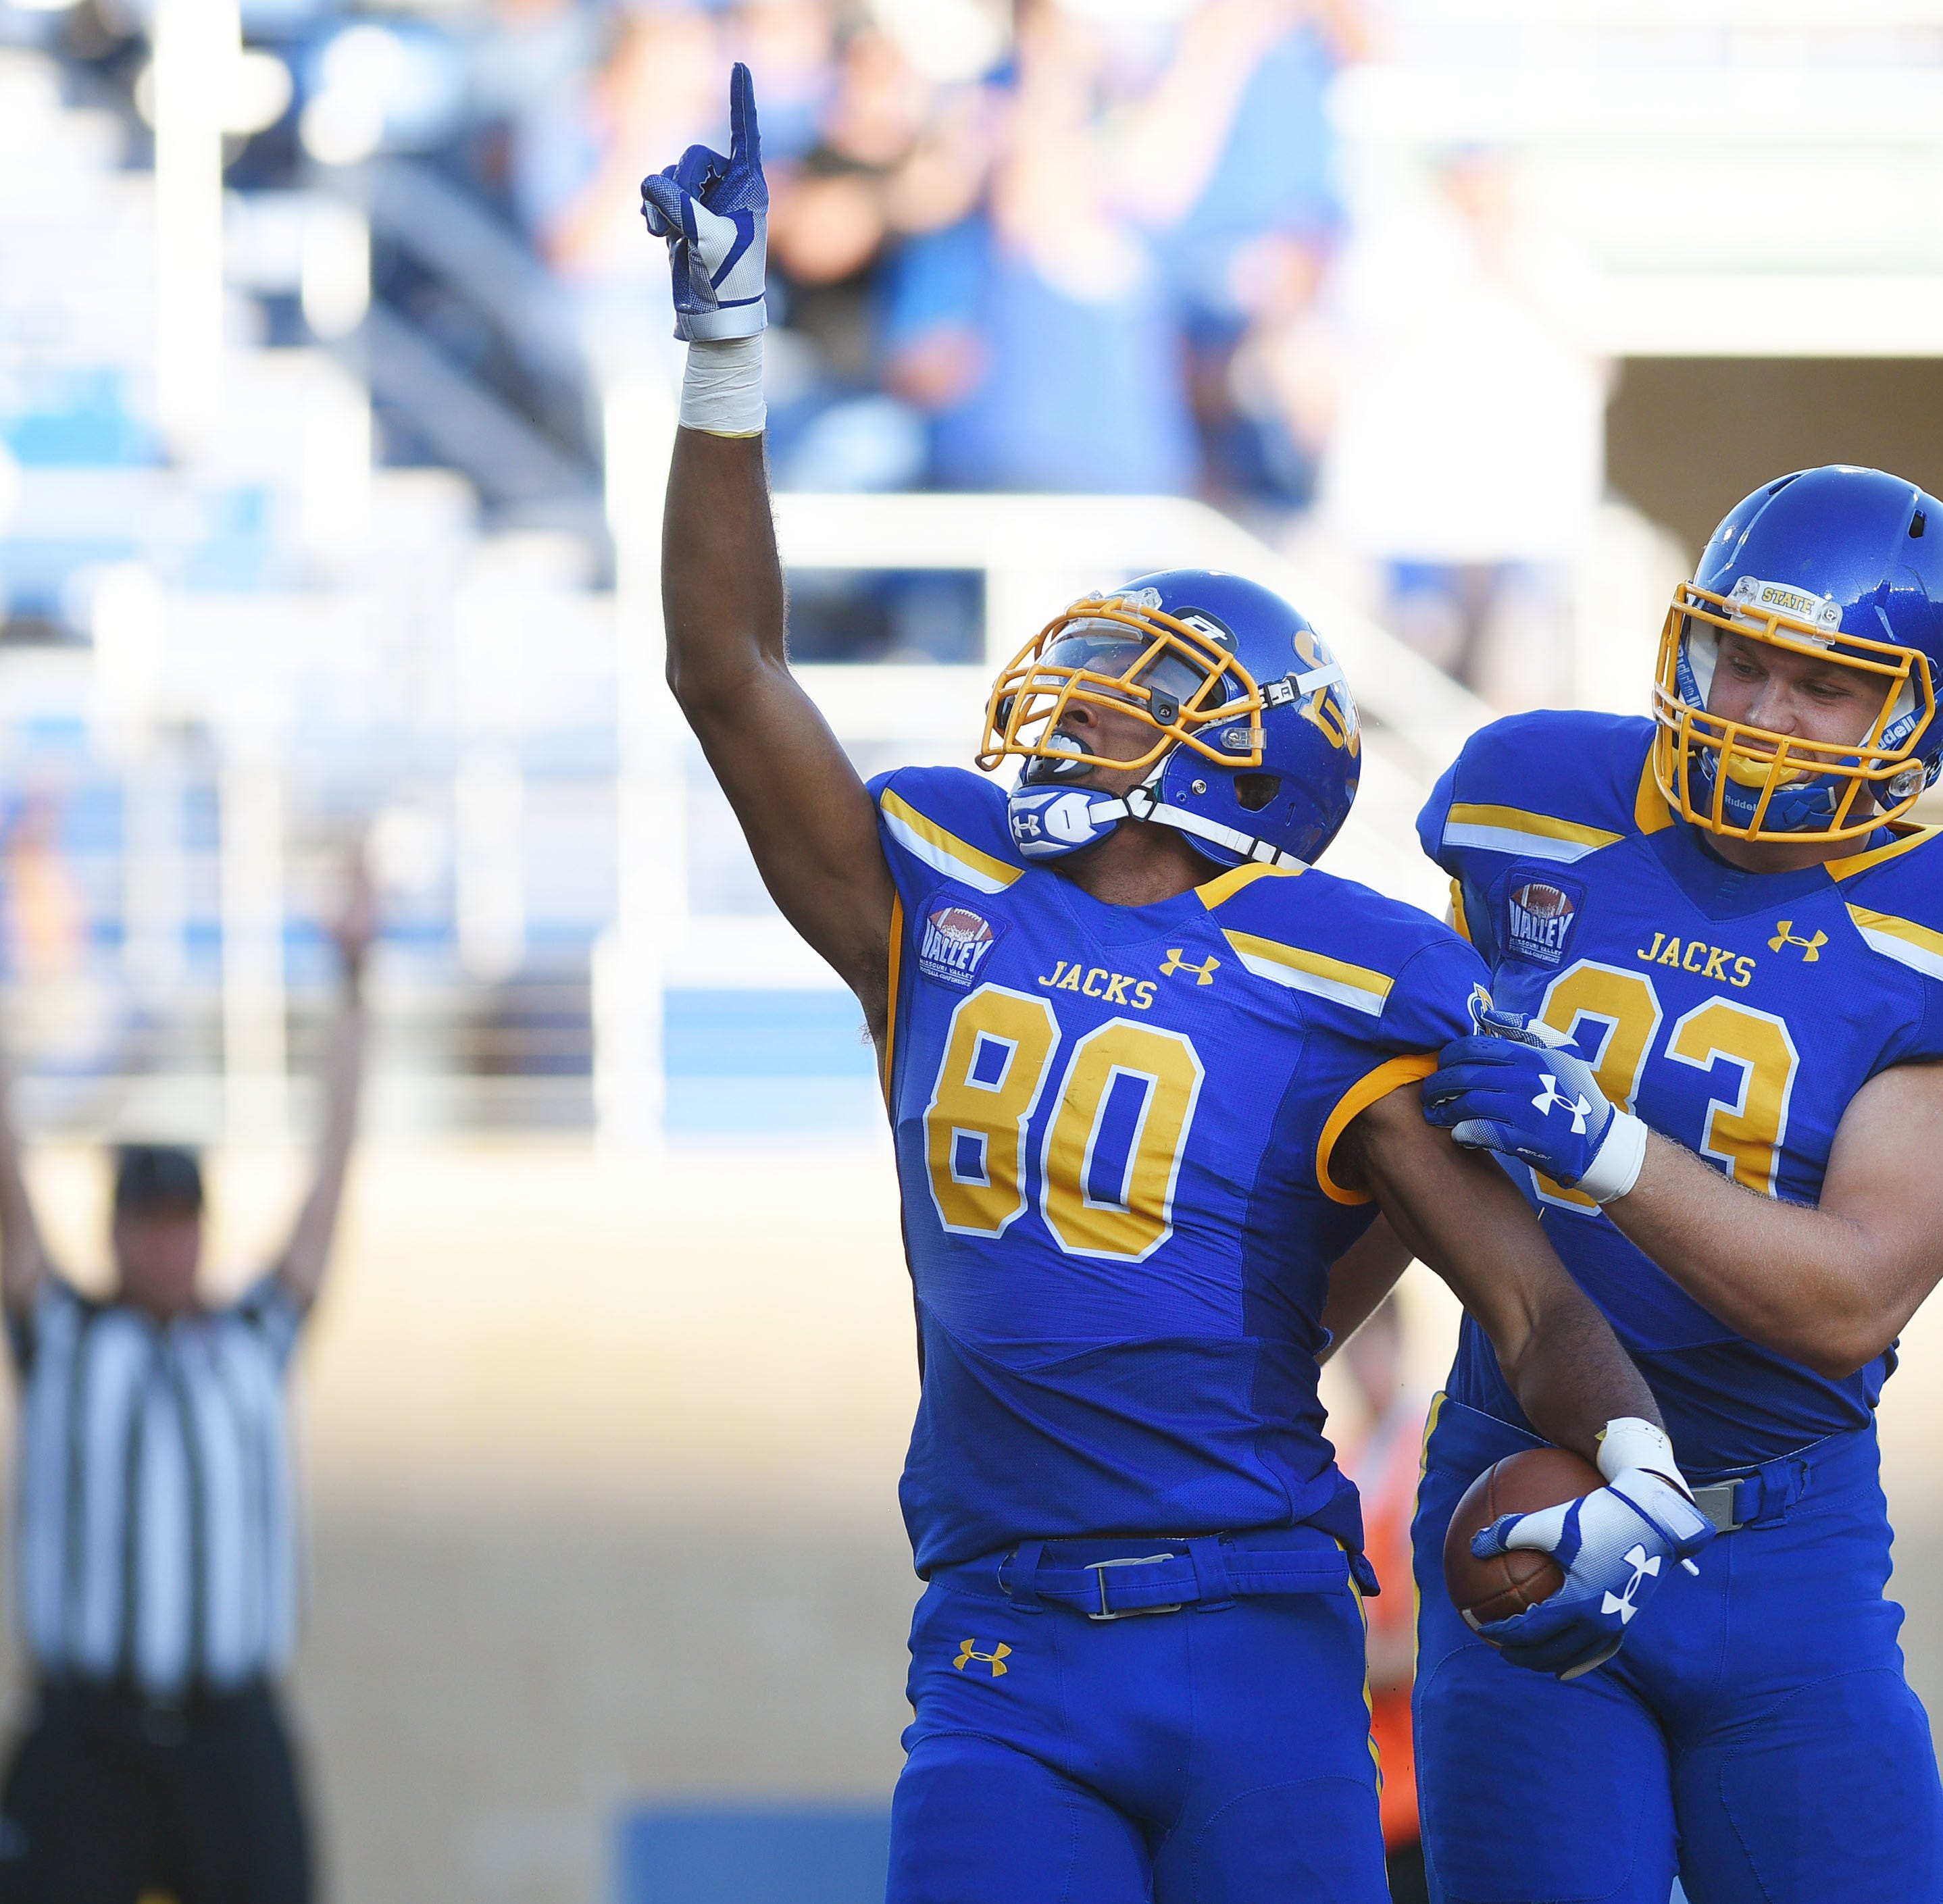 South Dakota State football: Reserves step up in rout of Arkansas-Pine Bluff